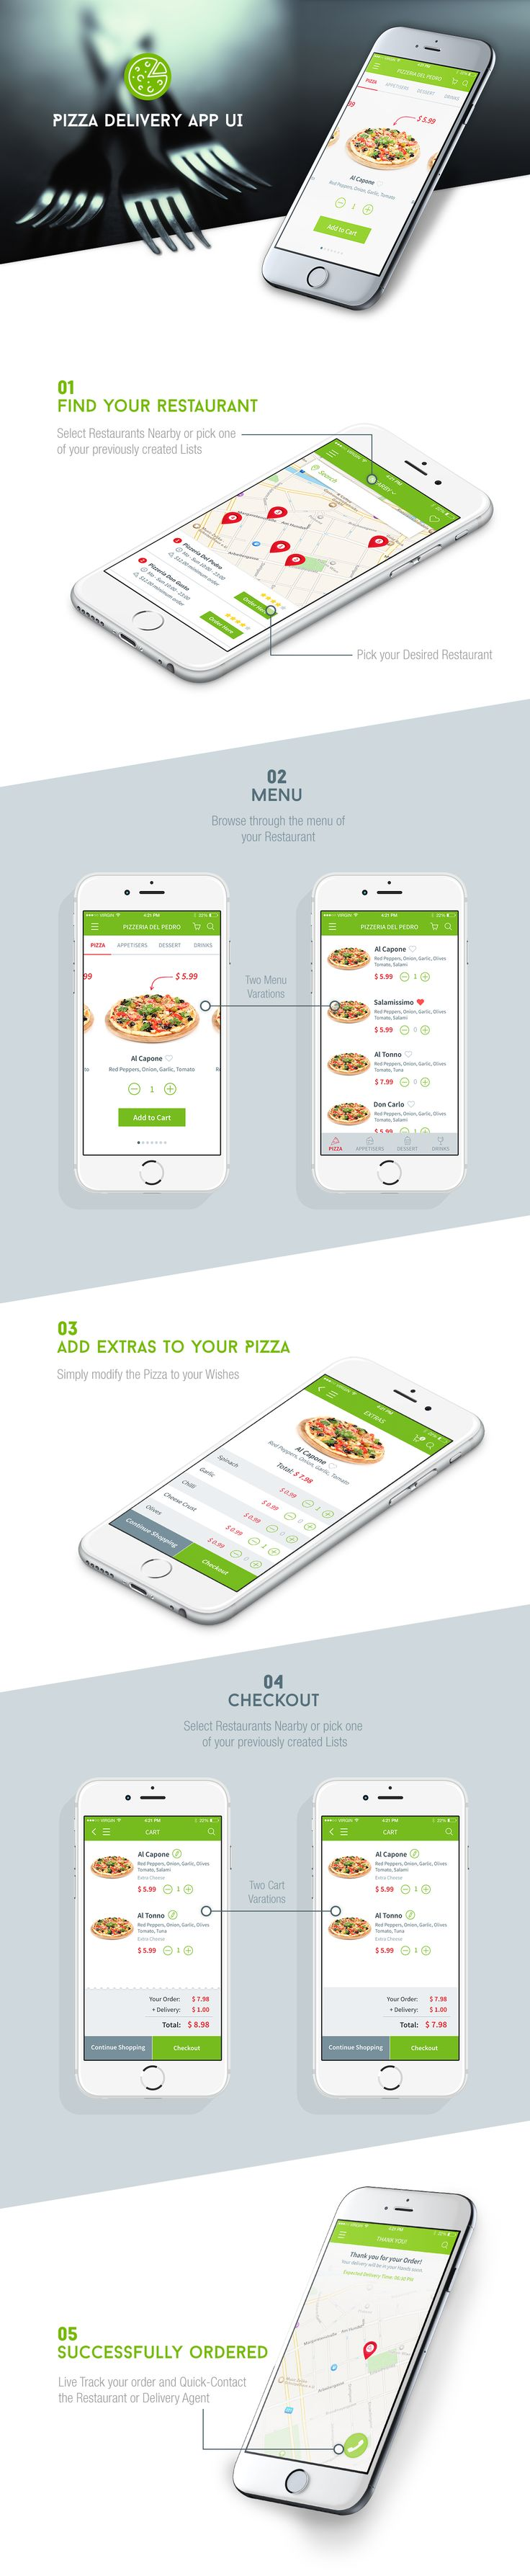 Pizza Delivery #app #ui #design